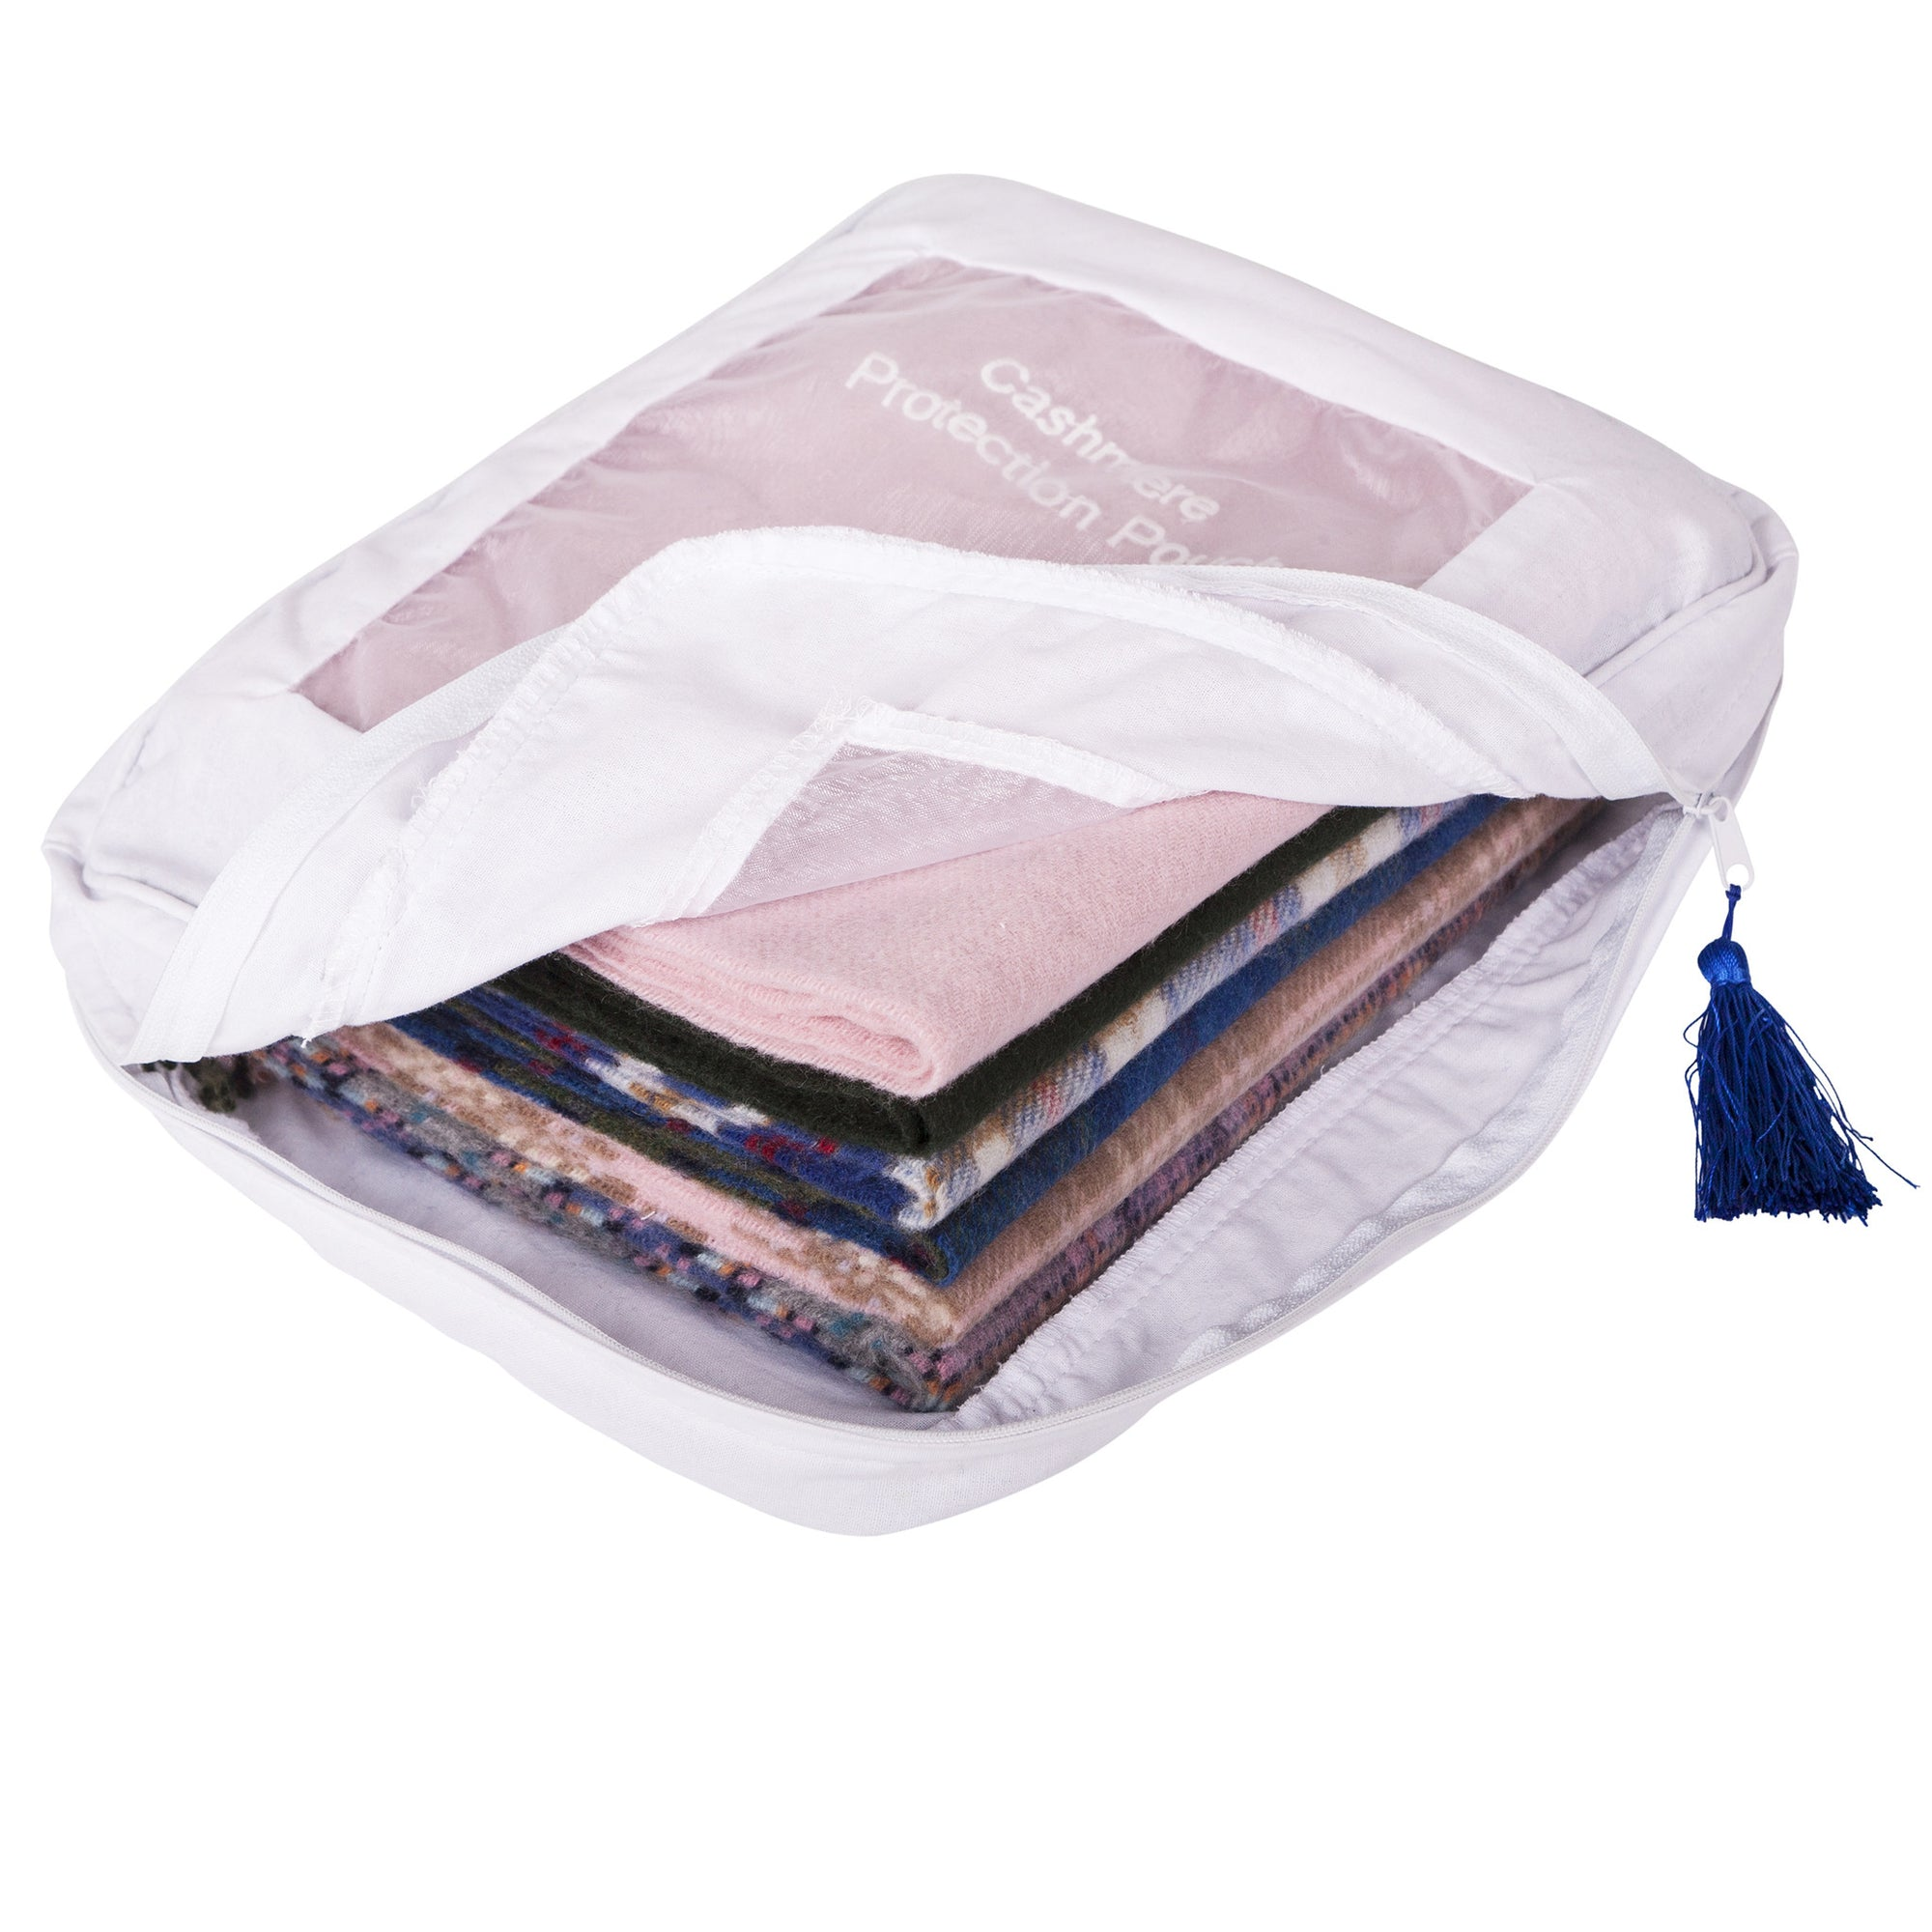 Anti Moth | Cashmere Storage Bag for Sweaters | Cashmere Storage Pouch | buy now at The Cashmere Choice London